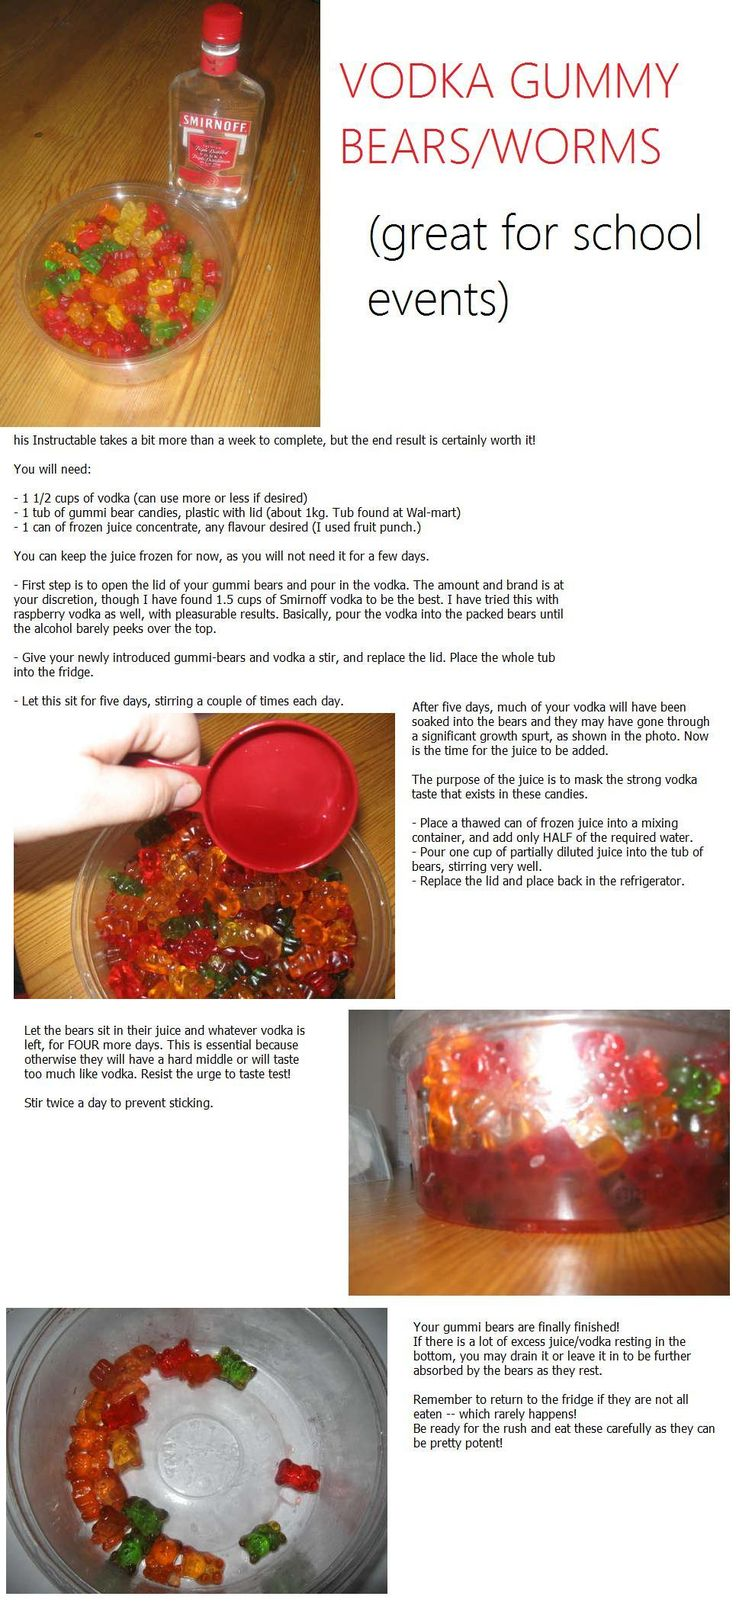 vodka gummy bears - never heard of this juice trick before. will have to try next time